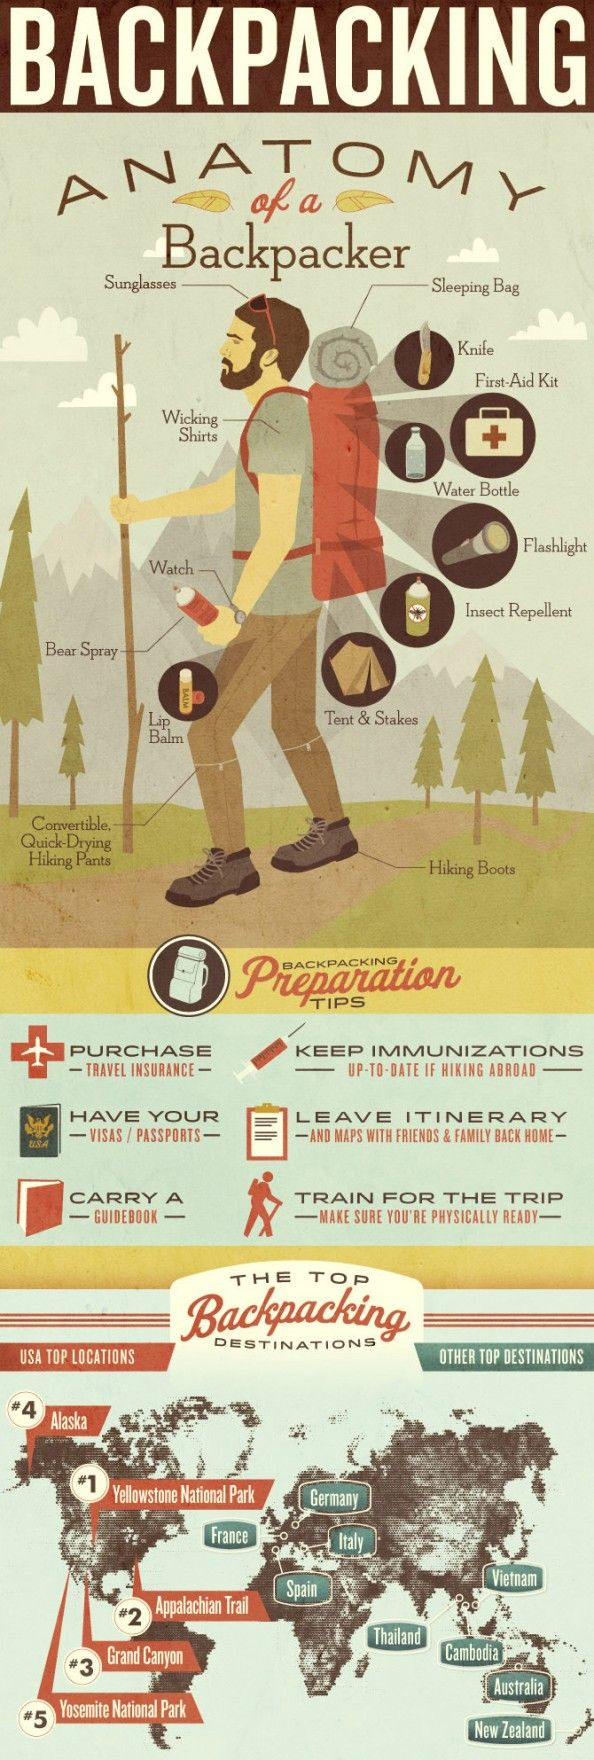 Backpacking Infographic- Yeah, the appy trail goes through my back yard! Love this.